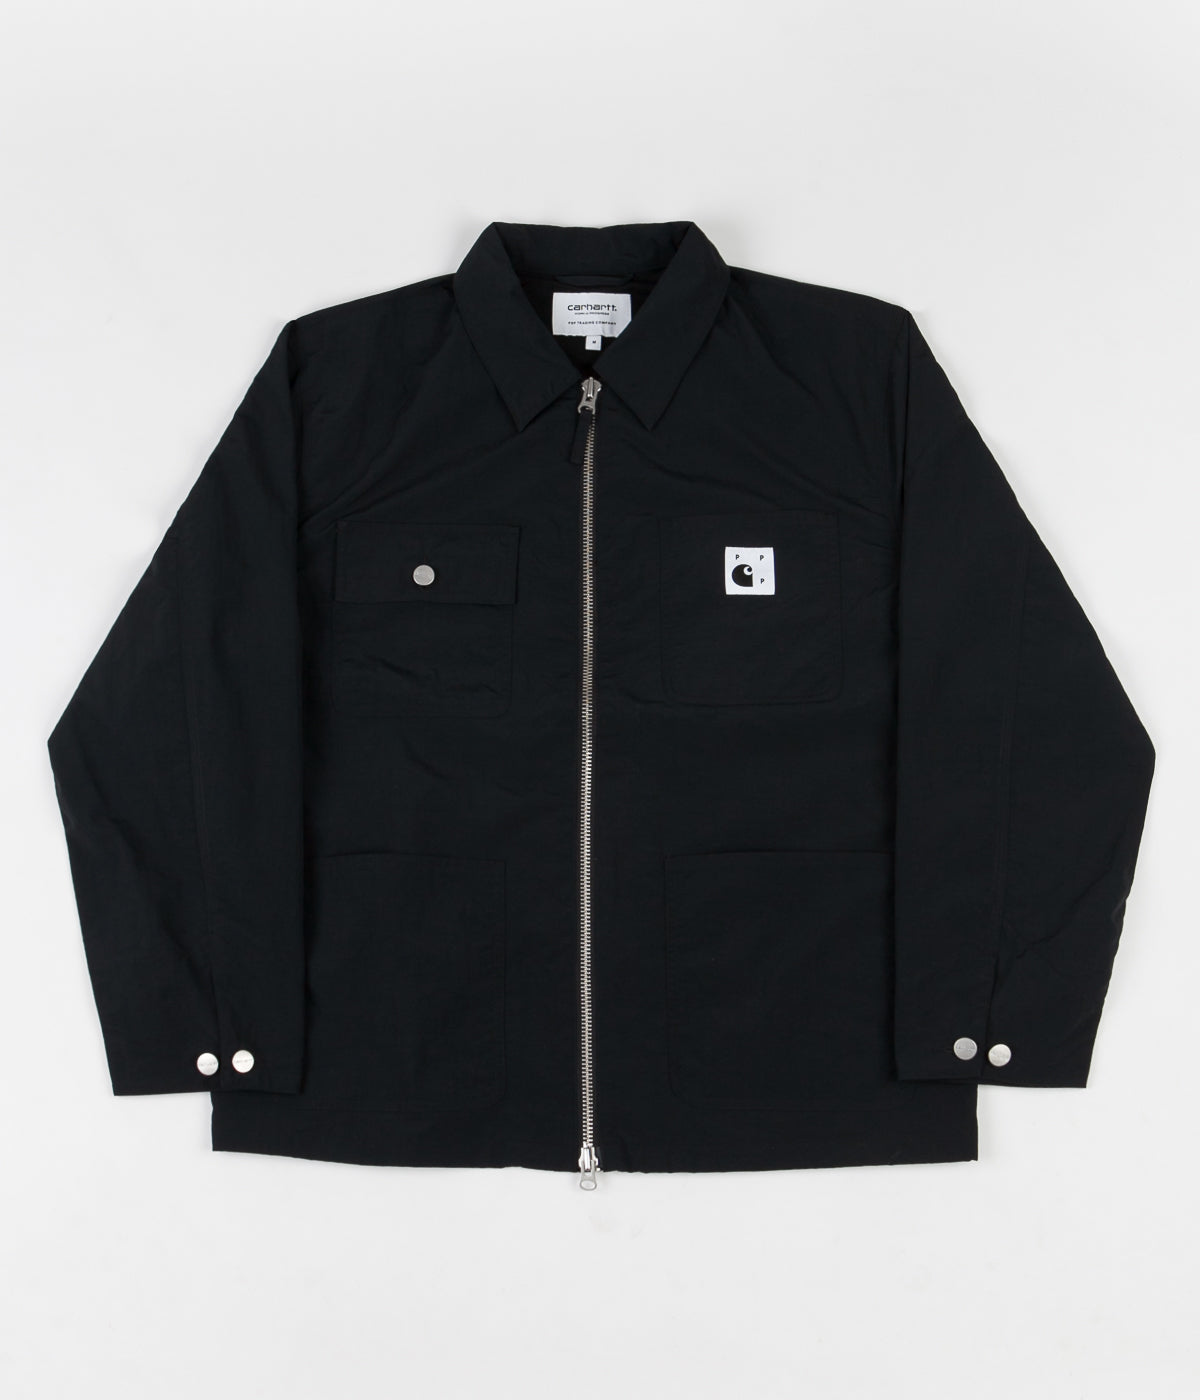 Pop Trading Company x Carhartt Michigan Chore Coat - Black